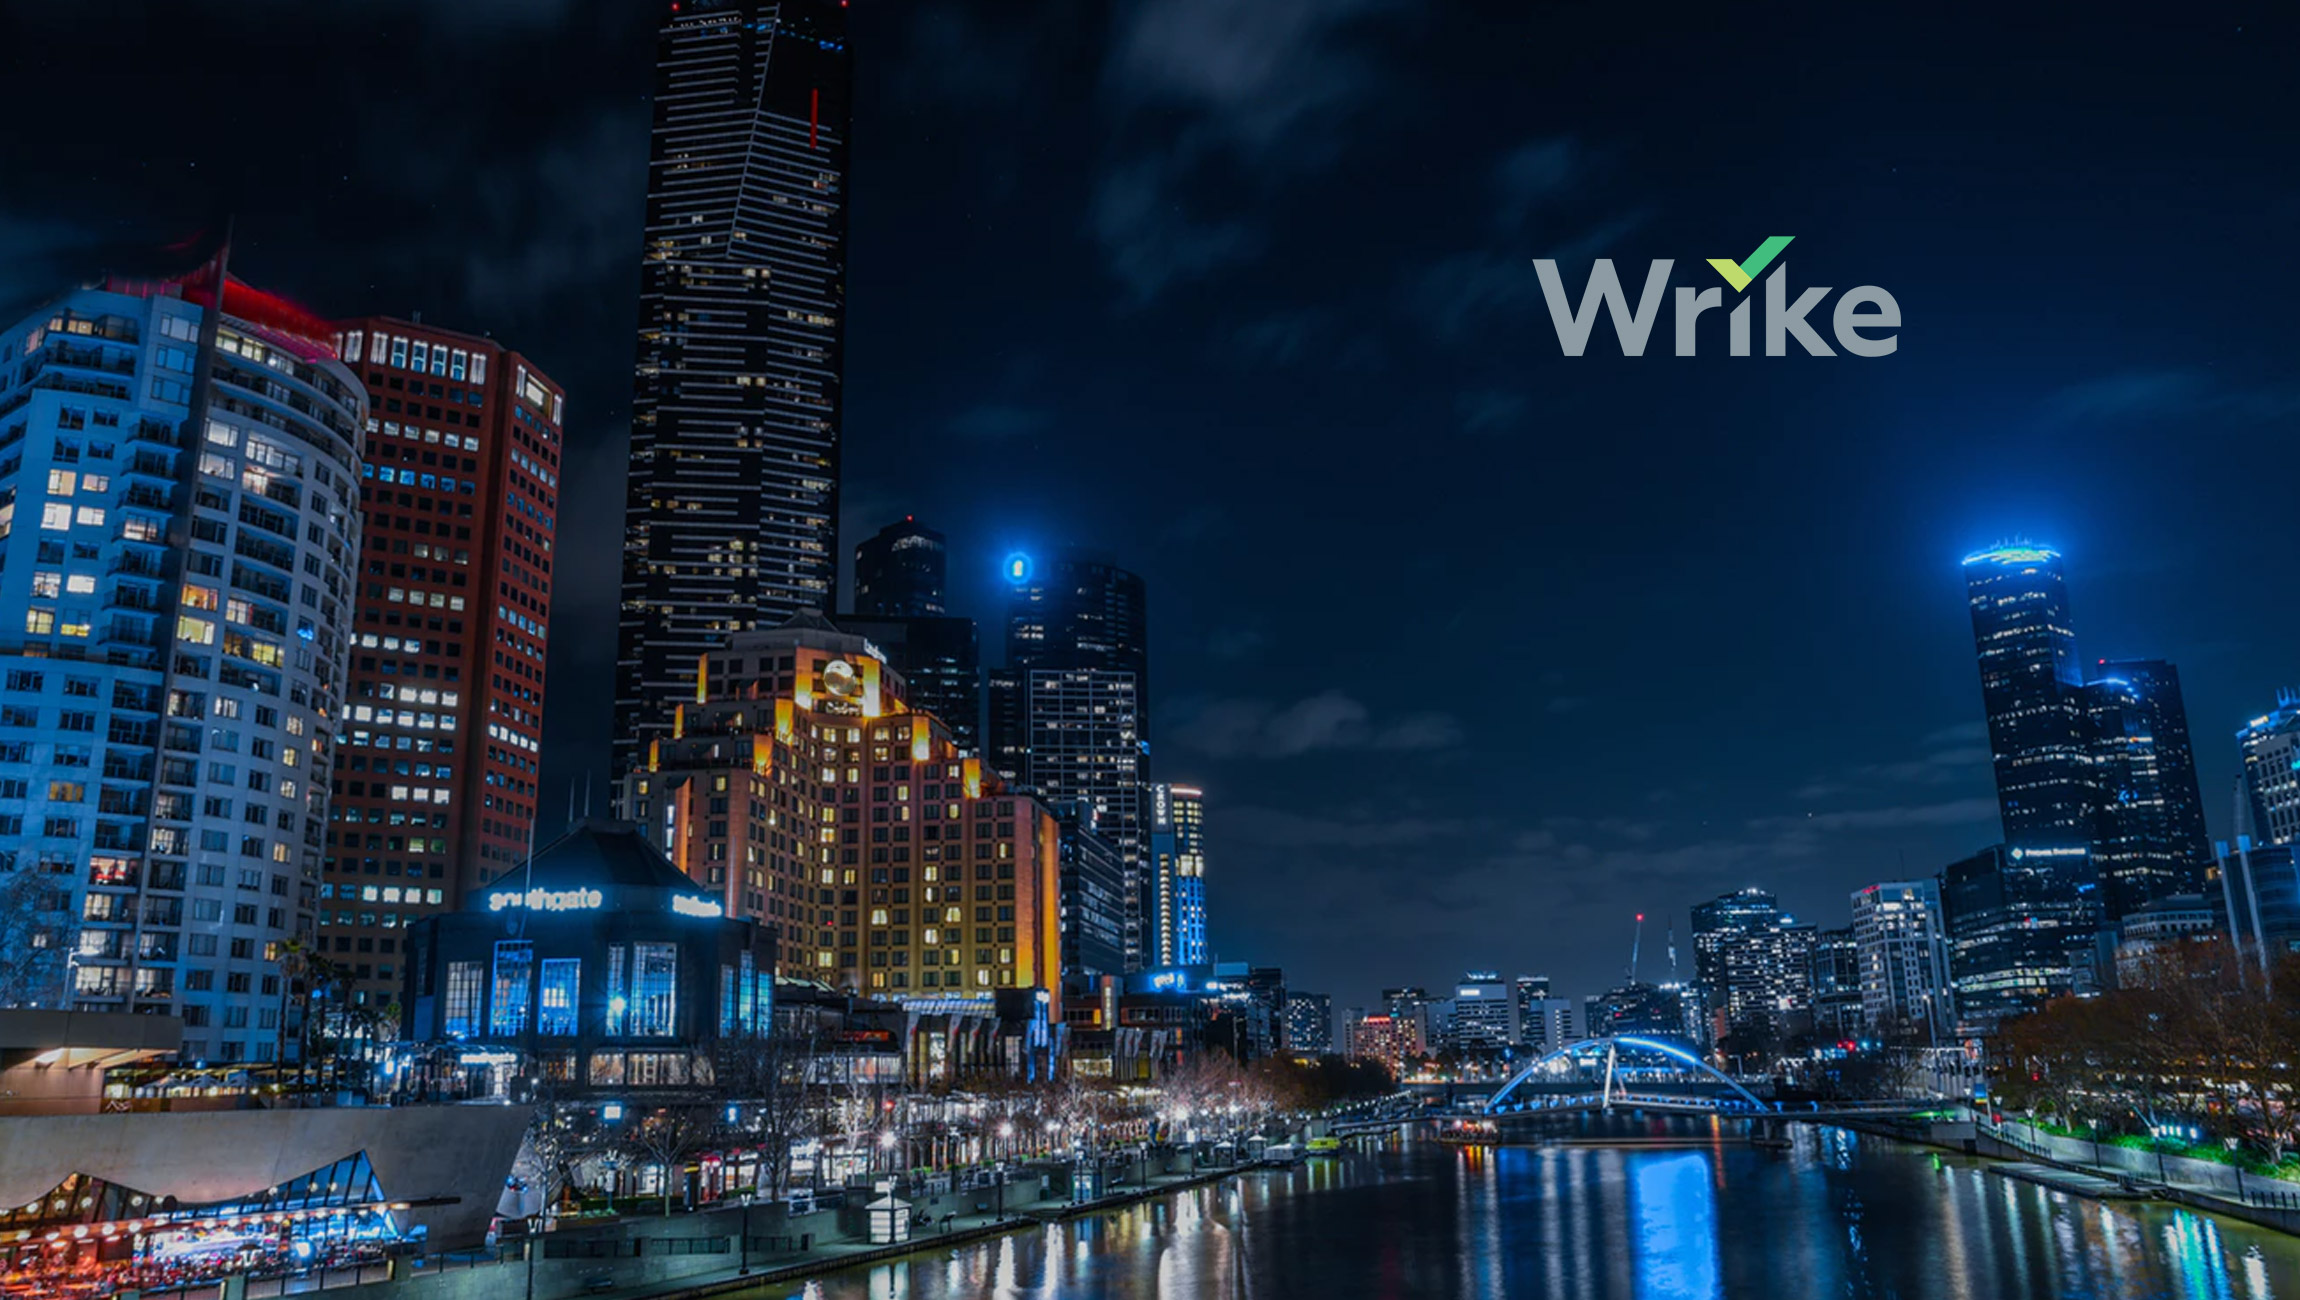 Wrike Expands Global Footprint With New APAC Headquarters in Melbourne, Australia